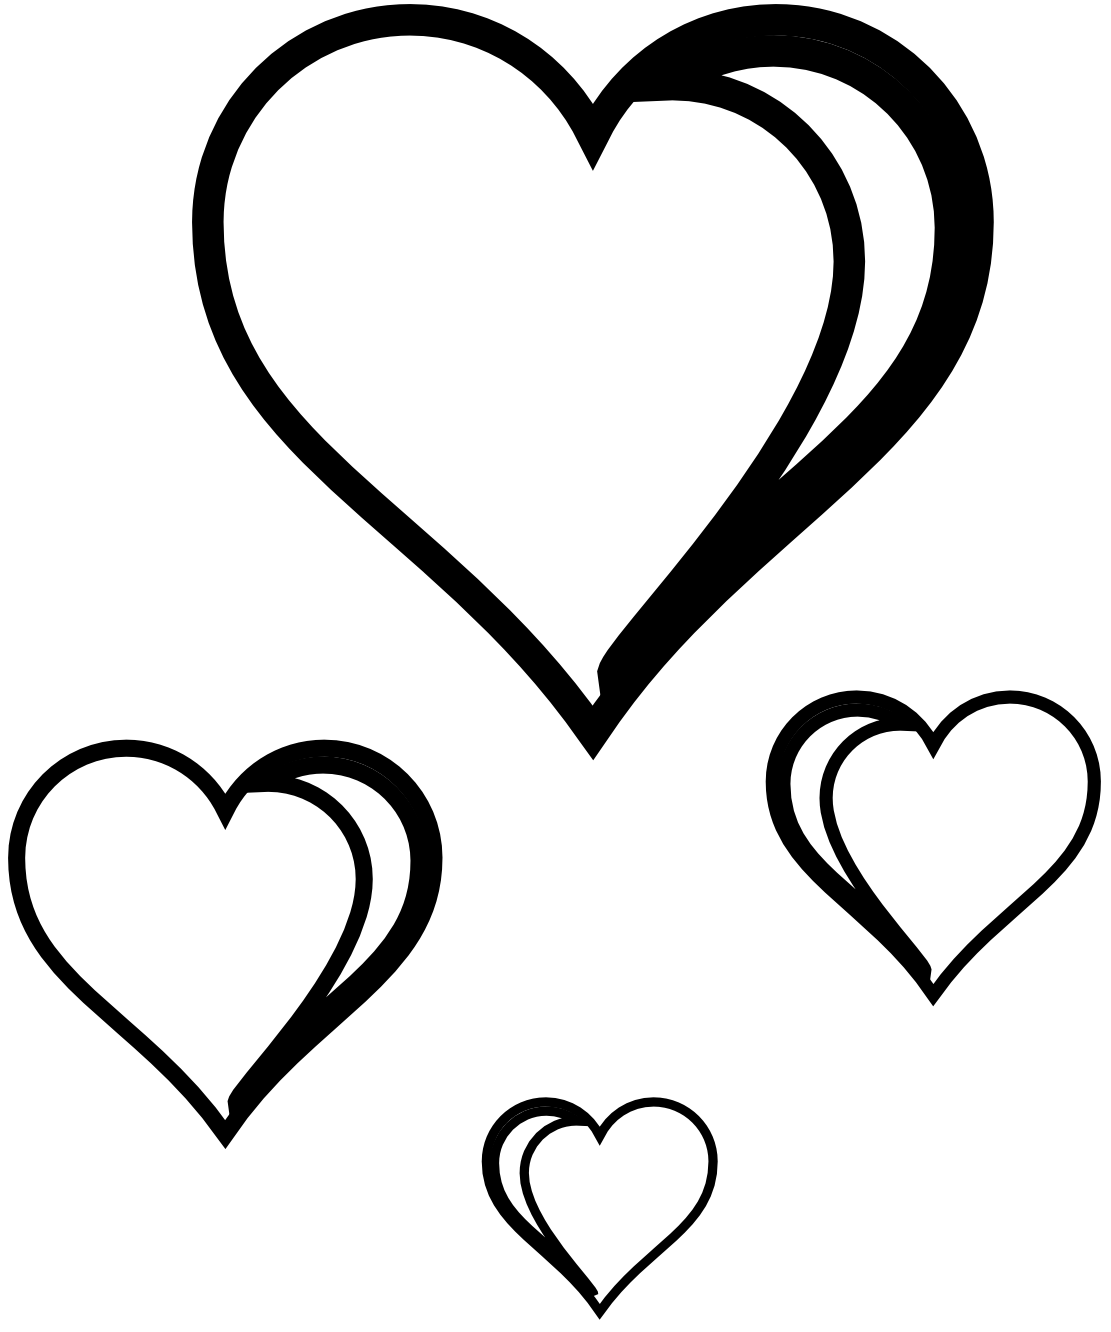 Fancy black heart free. Hearts clipart star